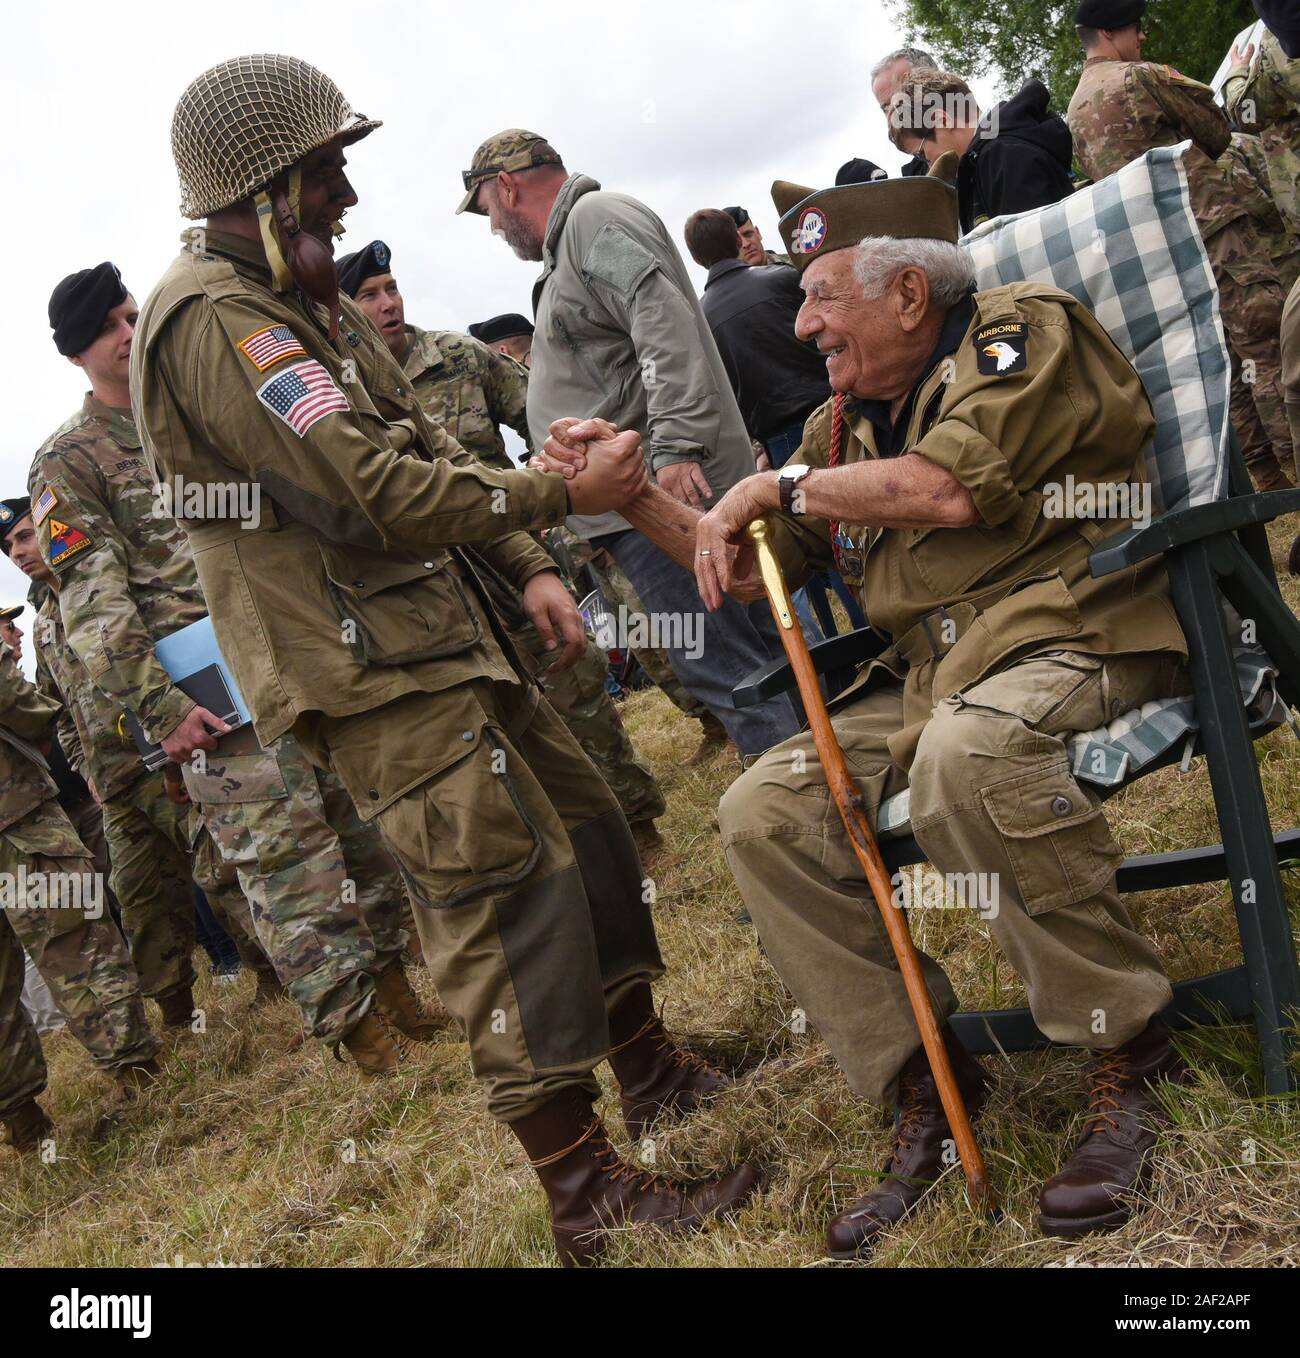 Celebrations For The 75th Anniversary Of The Normandy Landings American Soldiers Of The 101st Airborne Division Parachuted Into The Carentan Marsh On Stock Photo Alamy